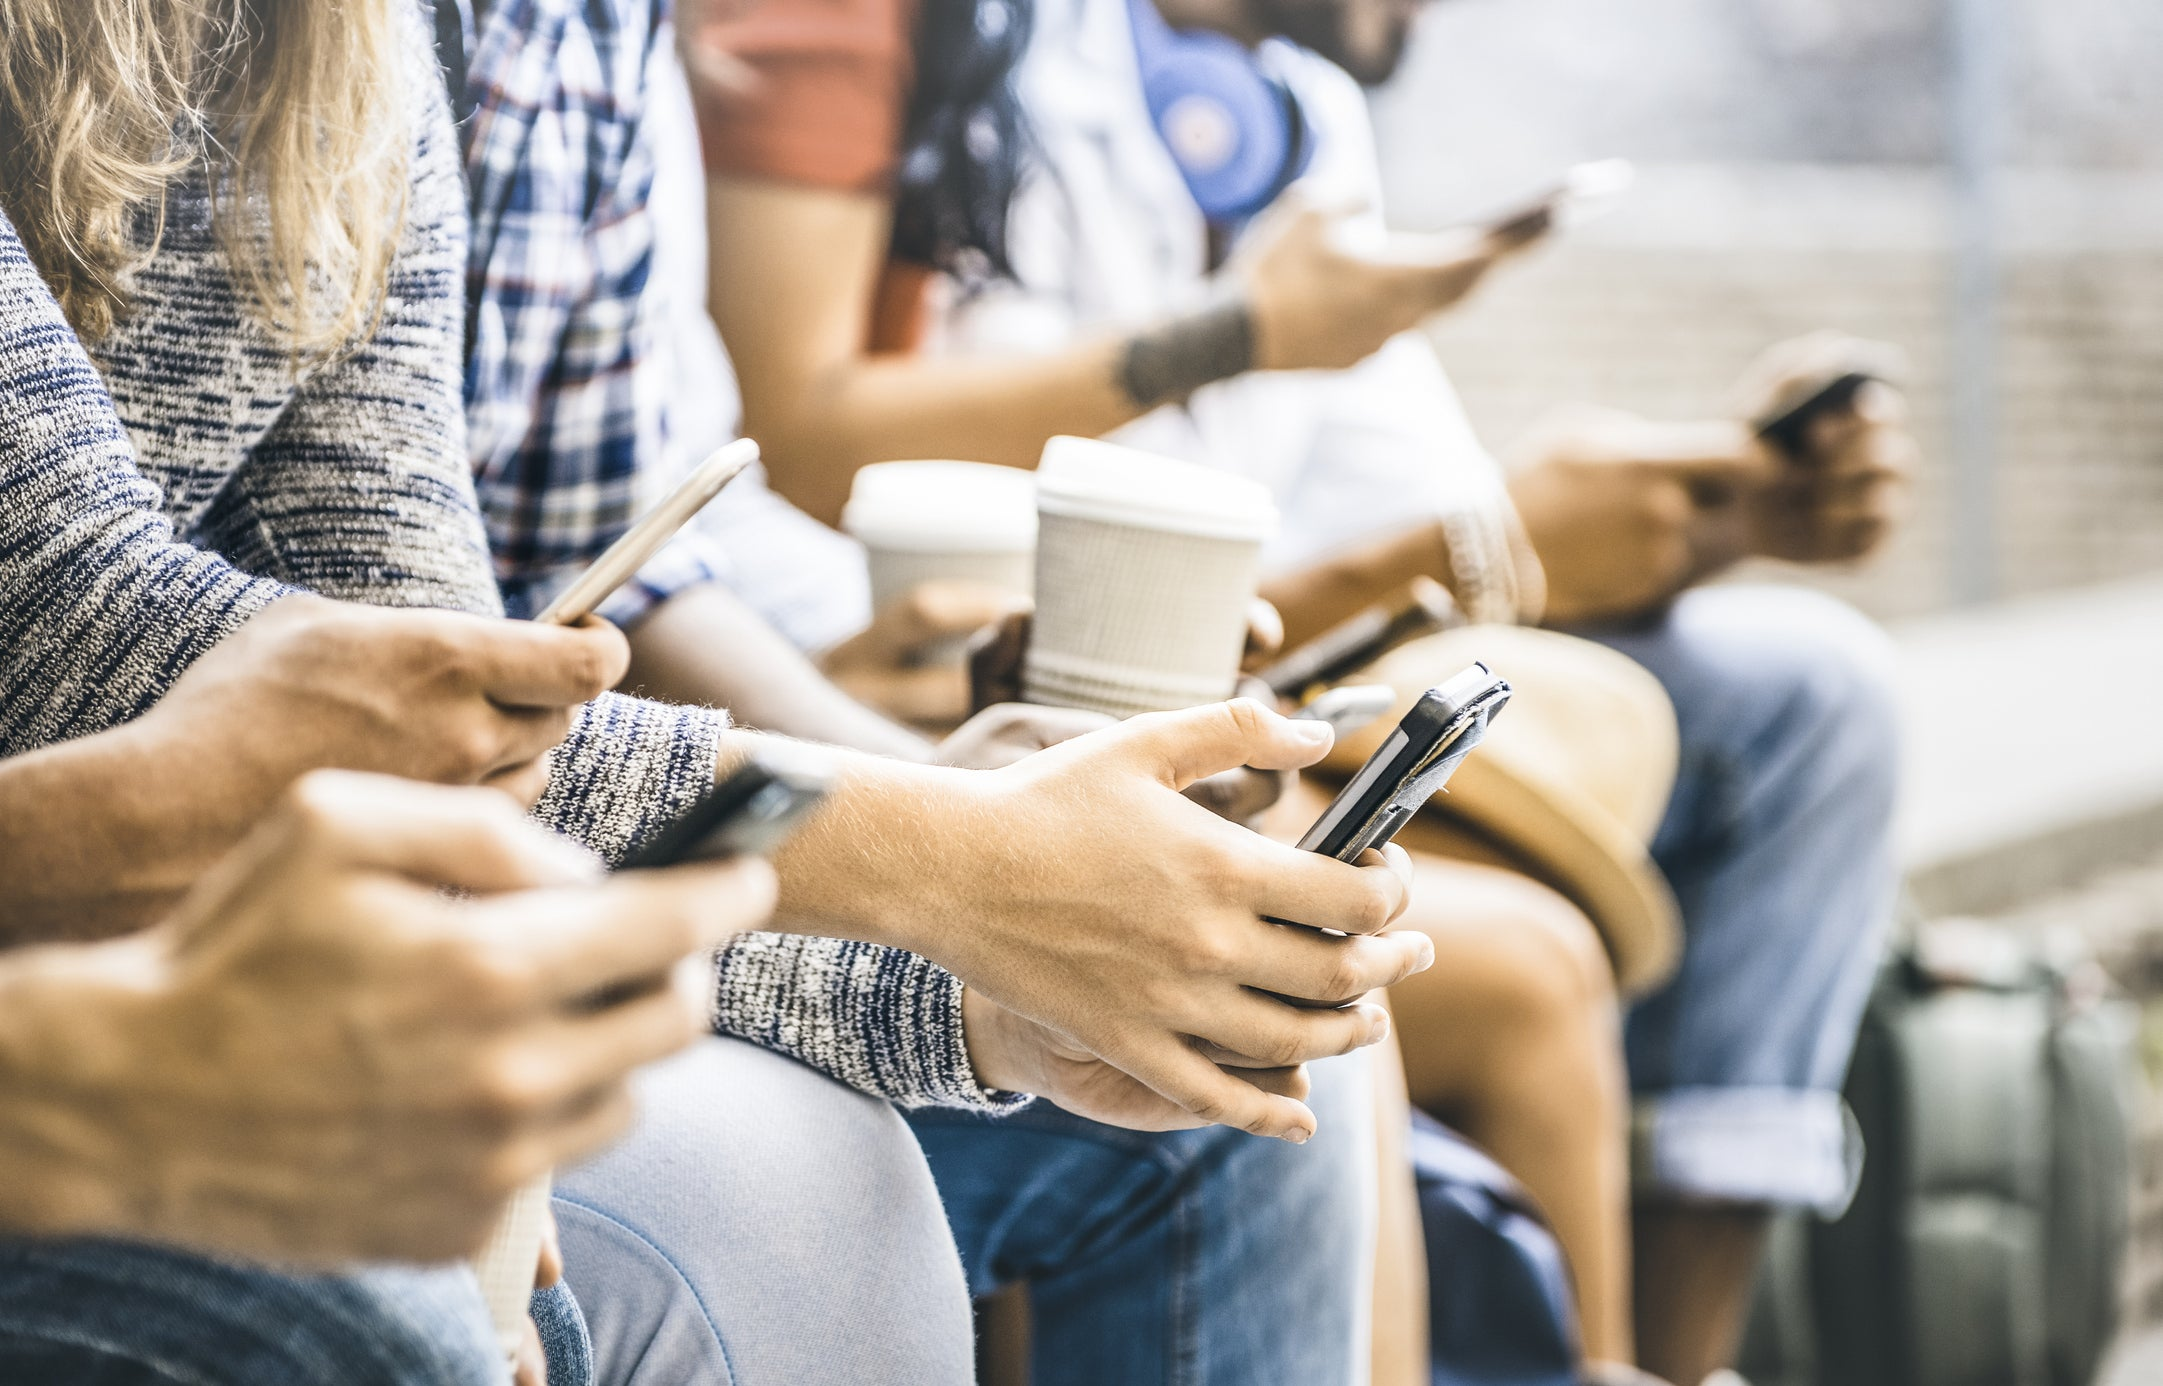 People sitting next to each other with smartphones in their hands